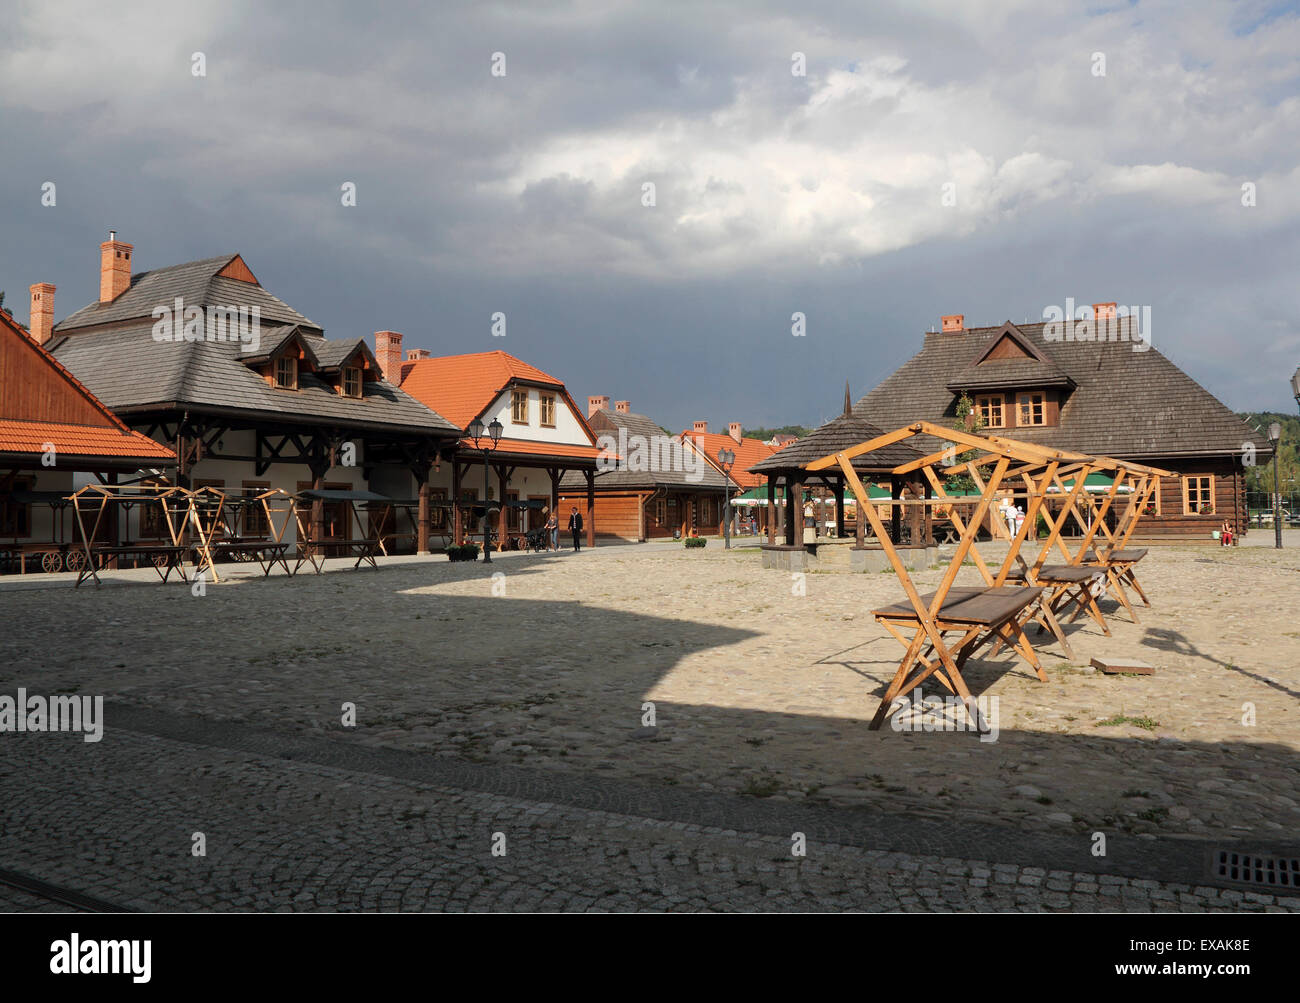 Ethnographic Museum of New Sacz, Poland - Stock Image